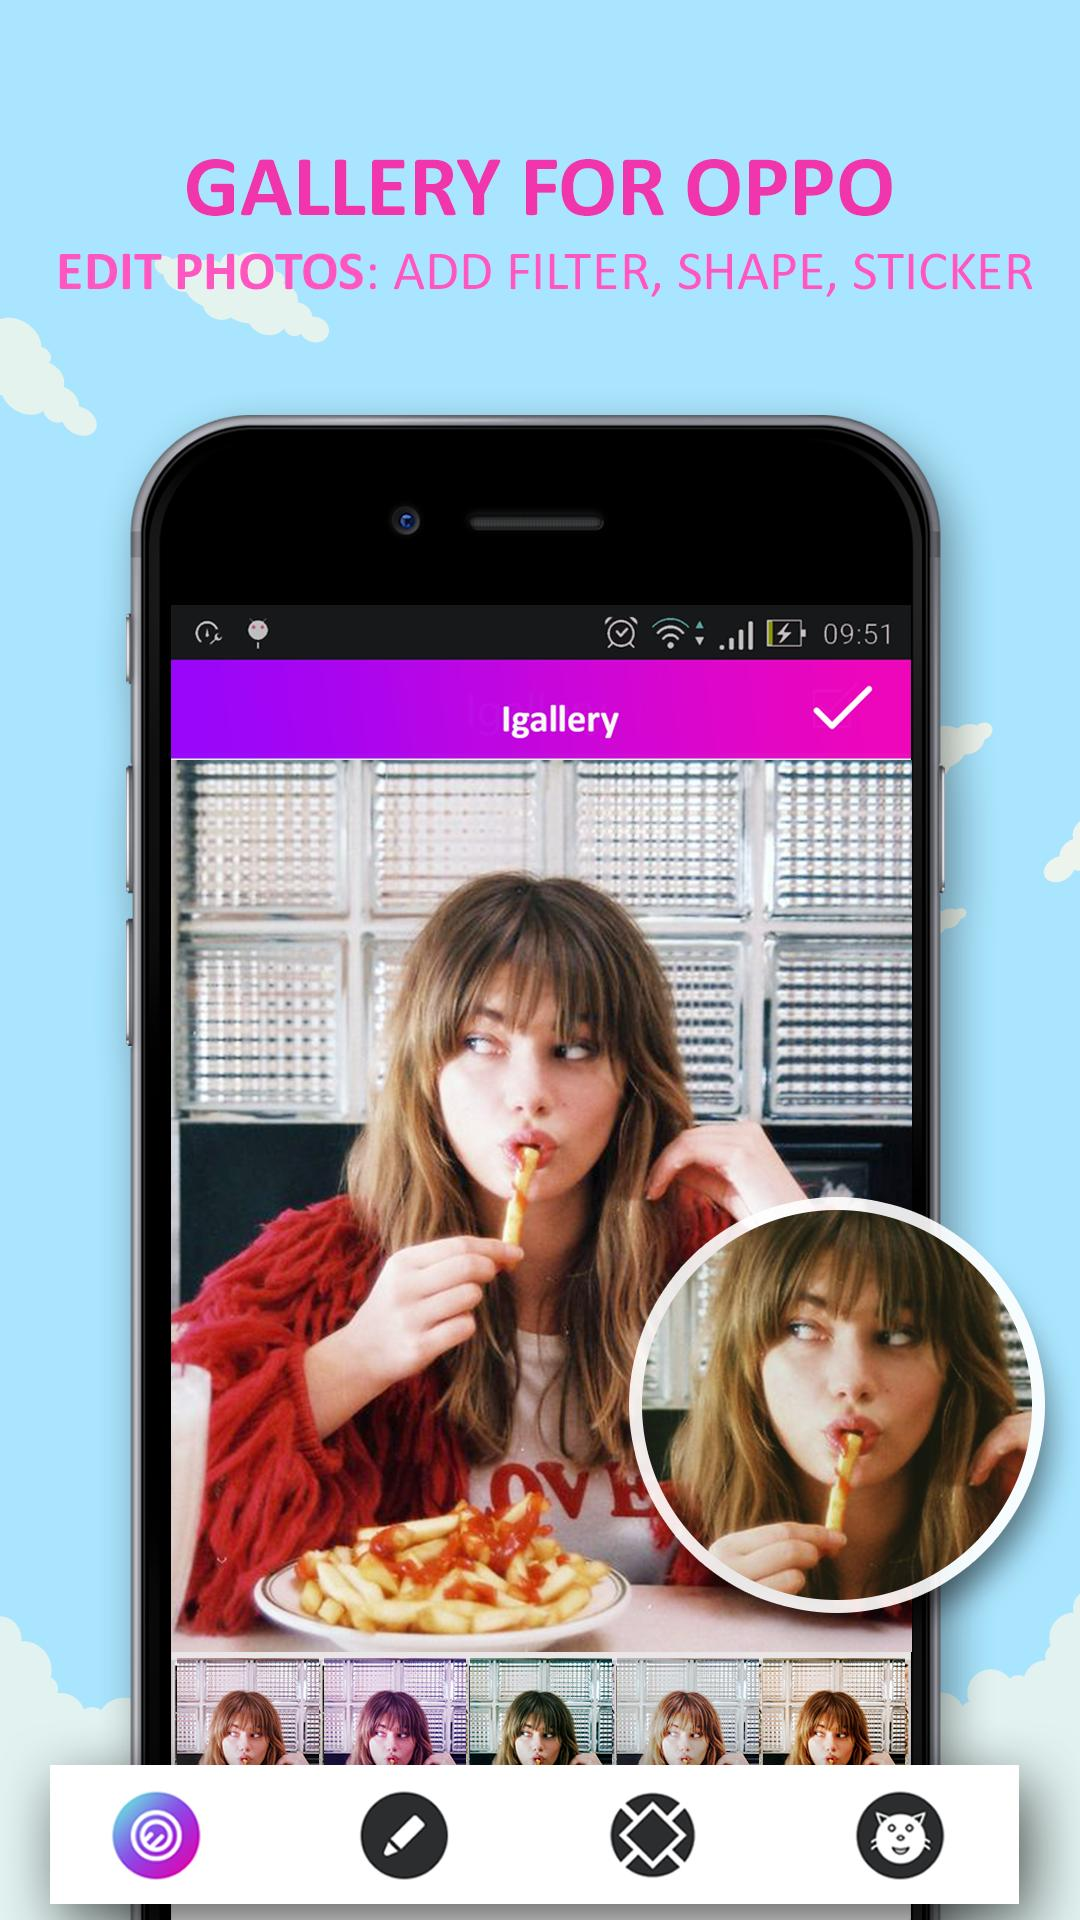 Gallery for Oppo for Android - APK Download